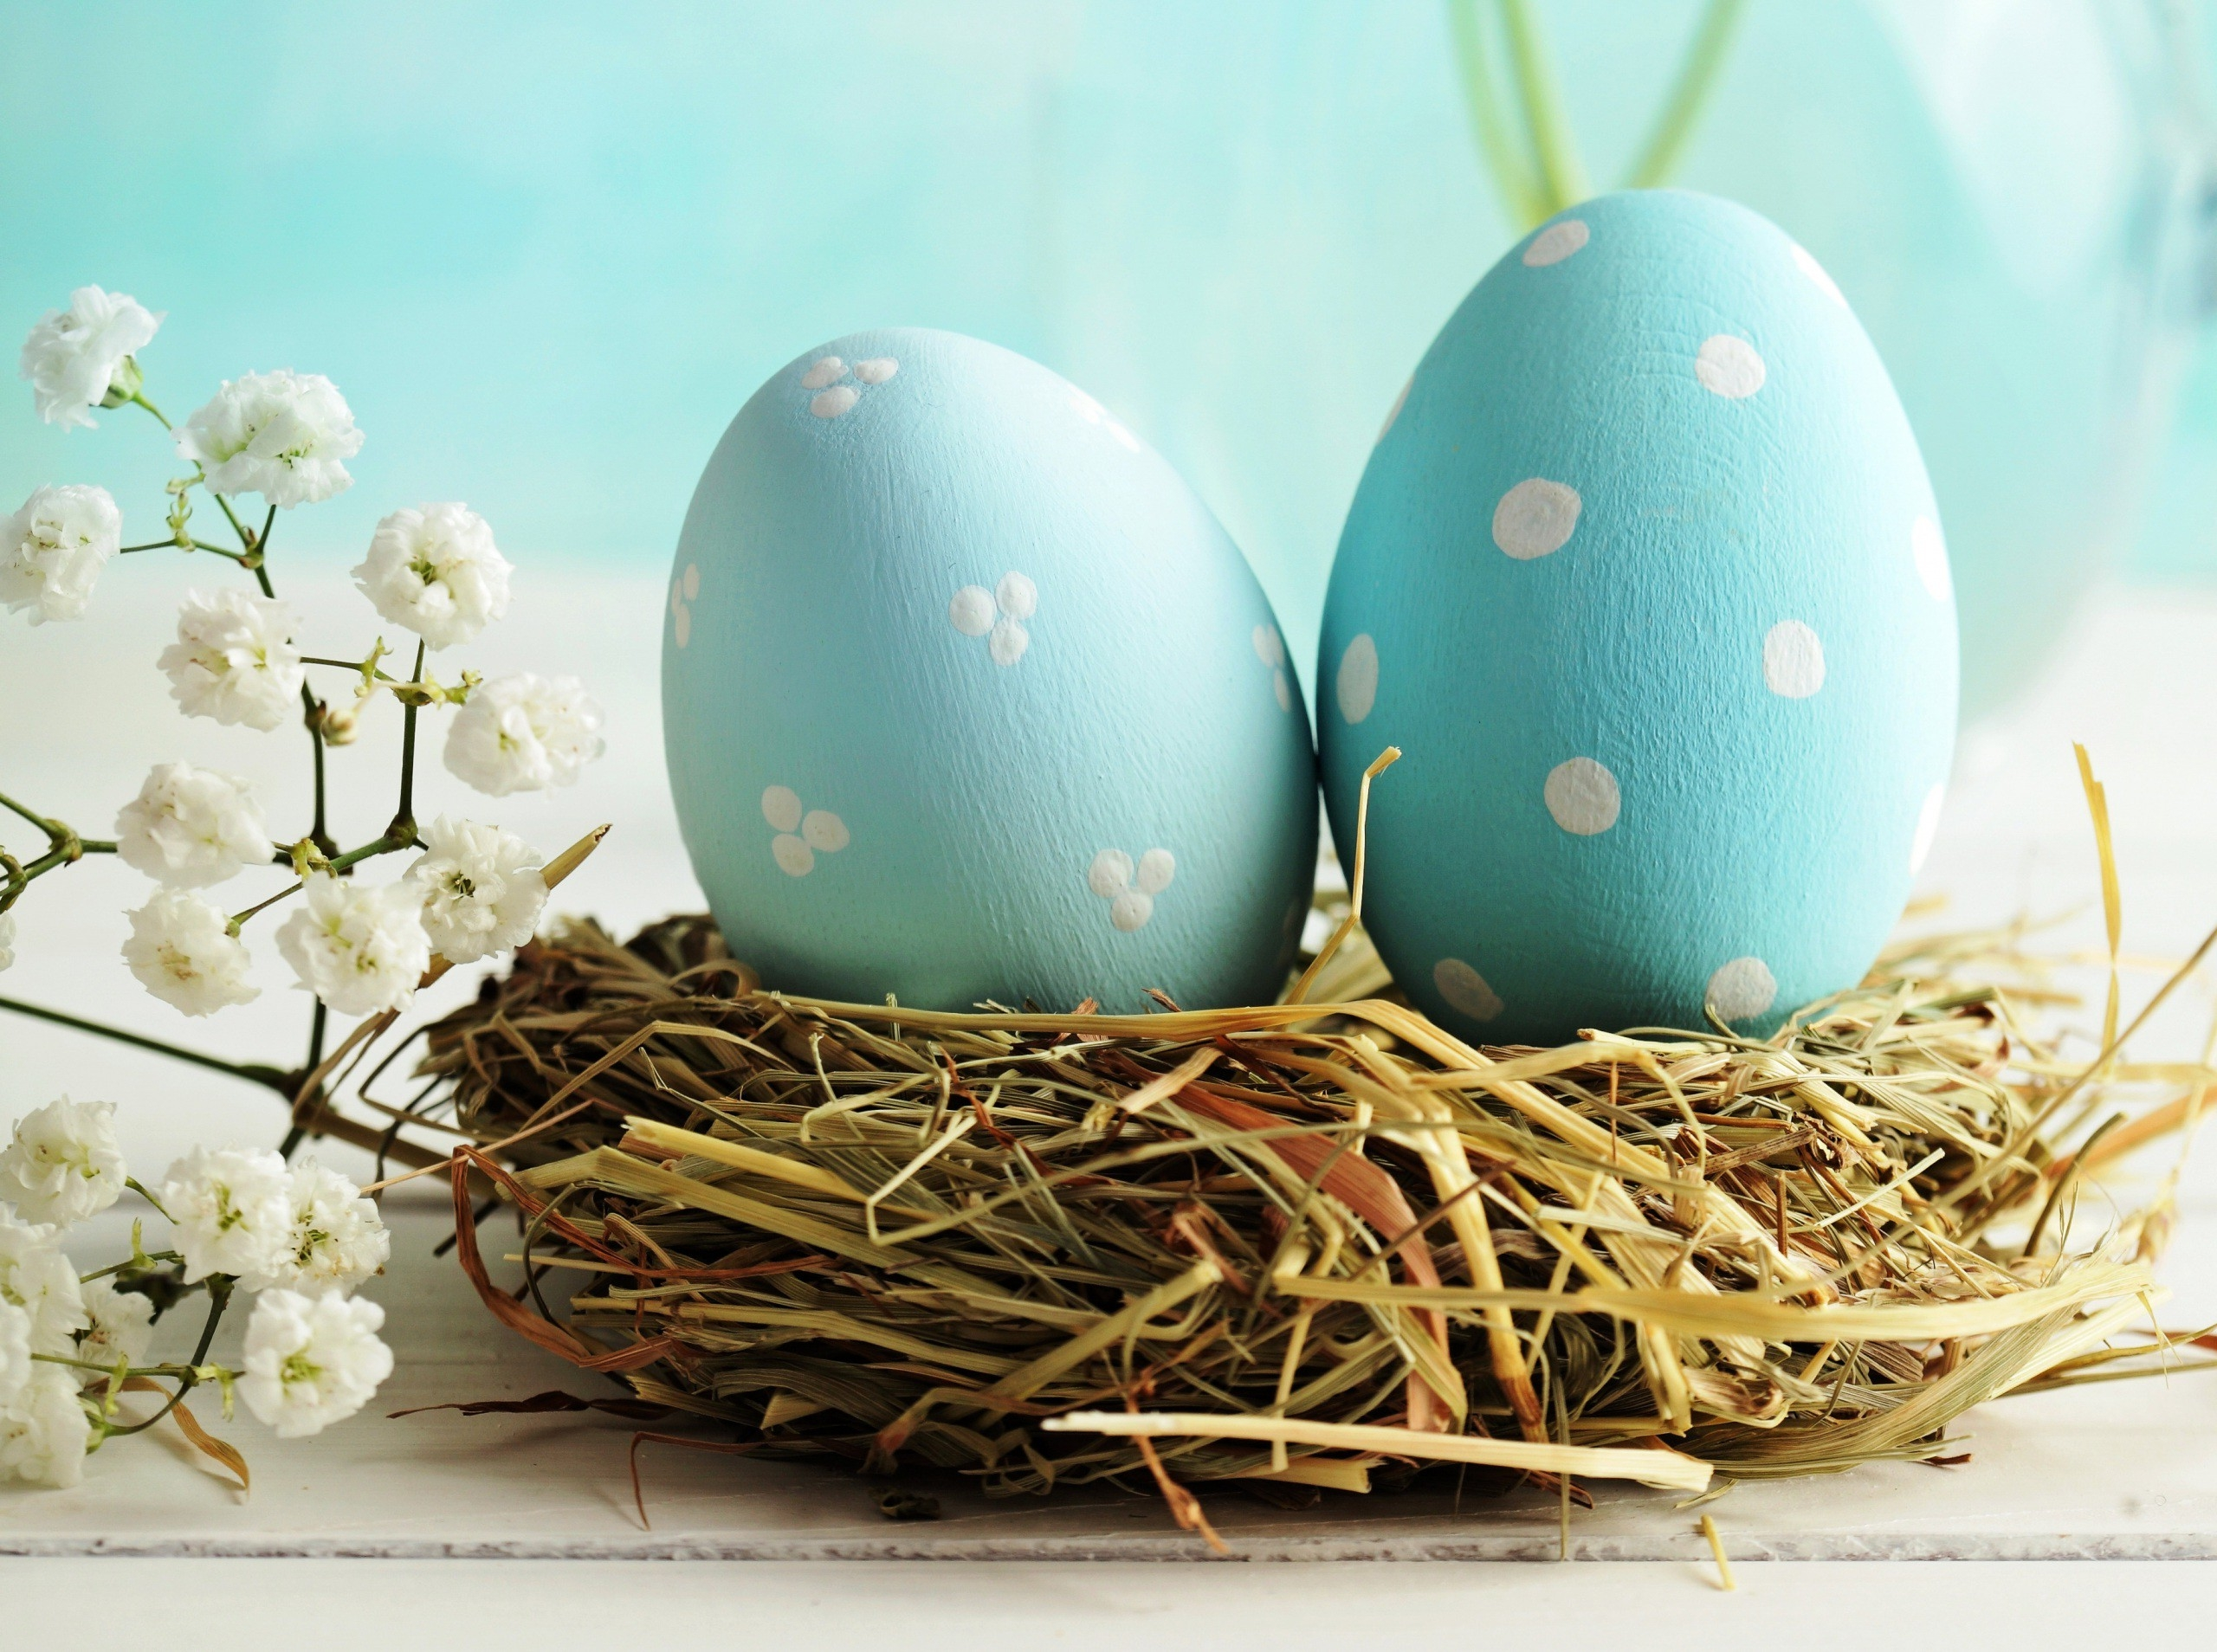 nest made of straw, containing two eggs, painted in turquoise, and decorated with white spots, blossoming tree branch nearby, how to dye easter eggs